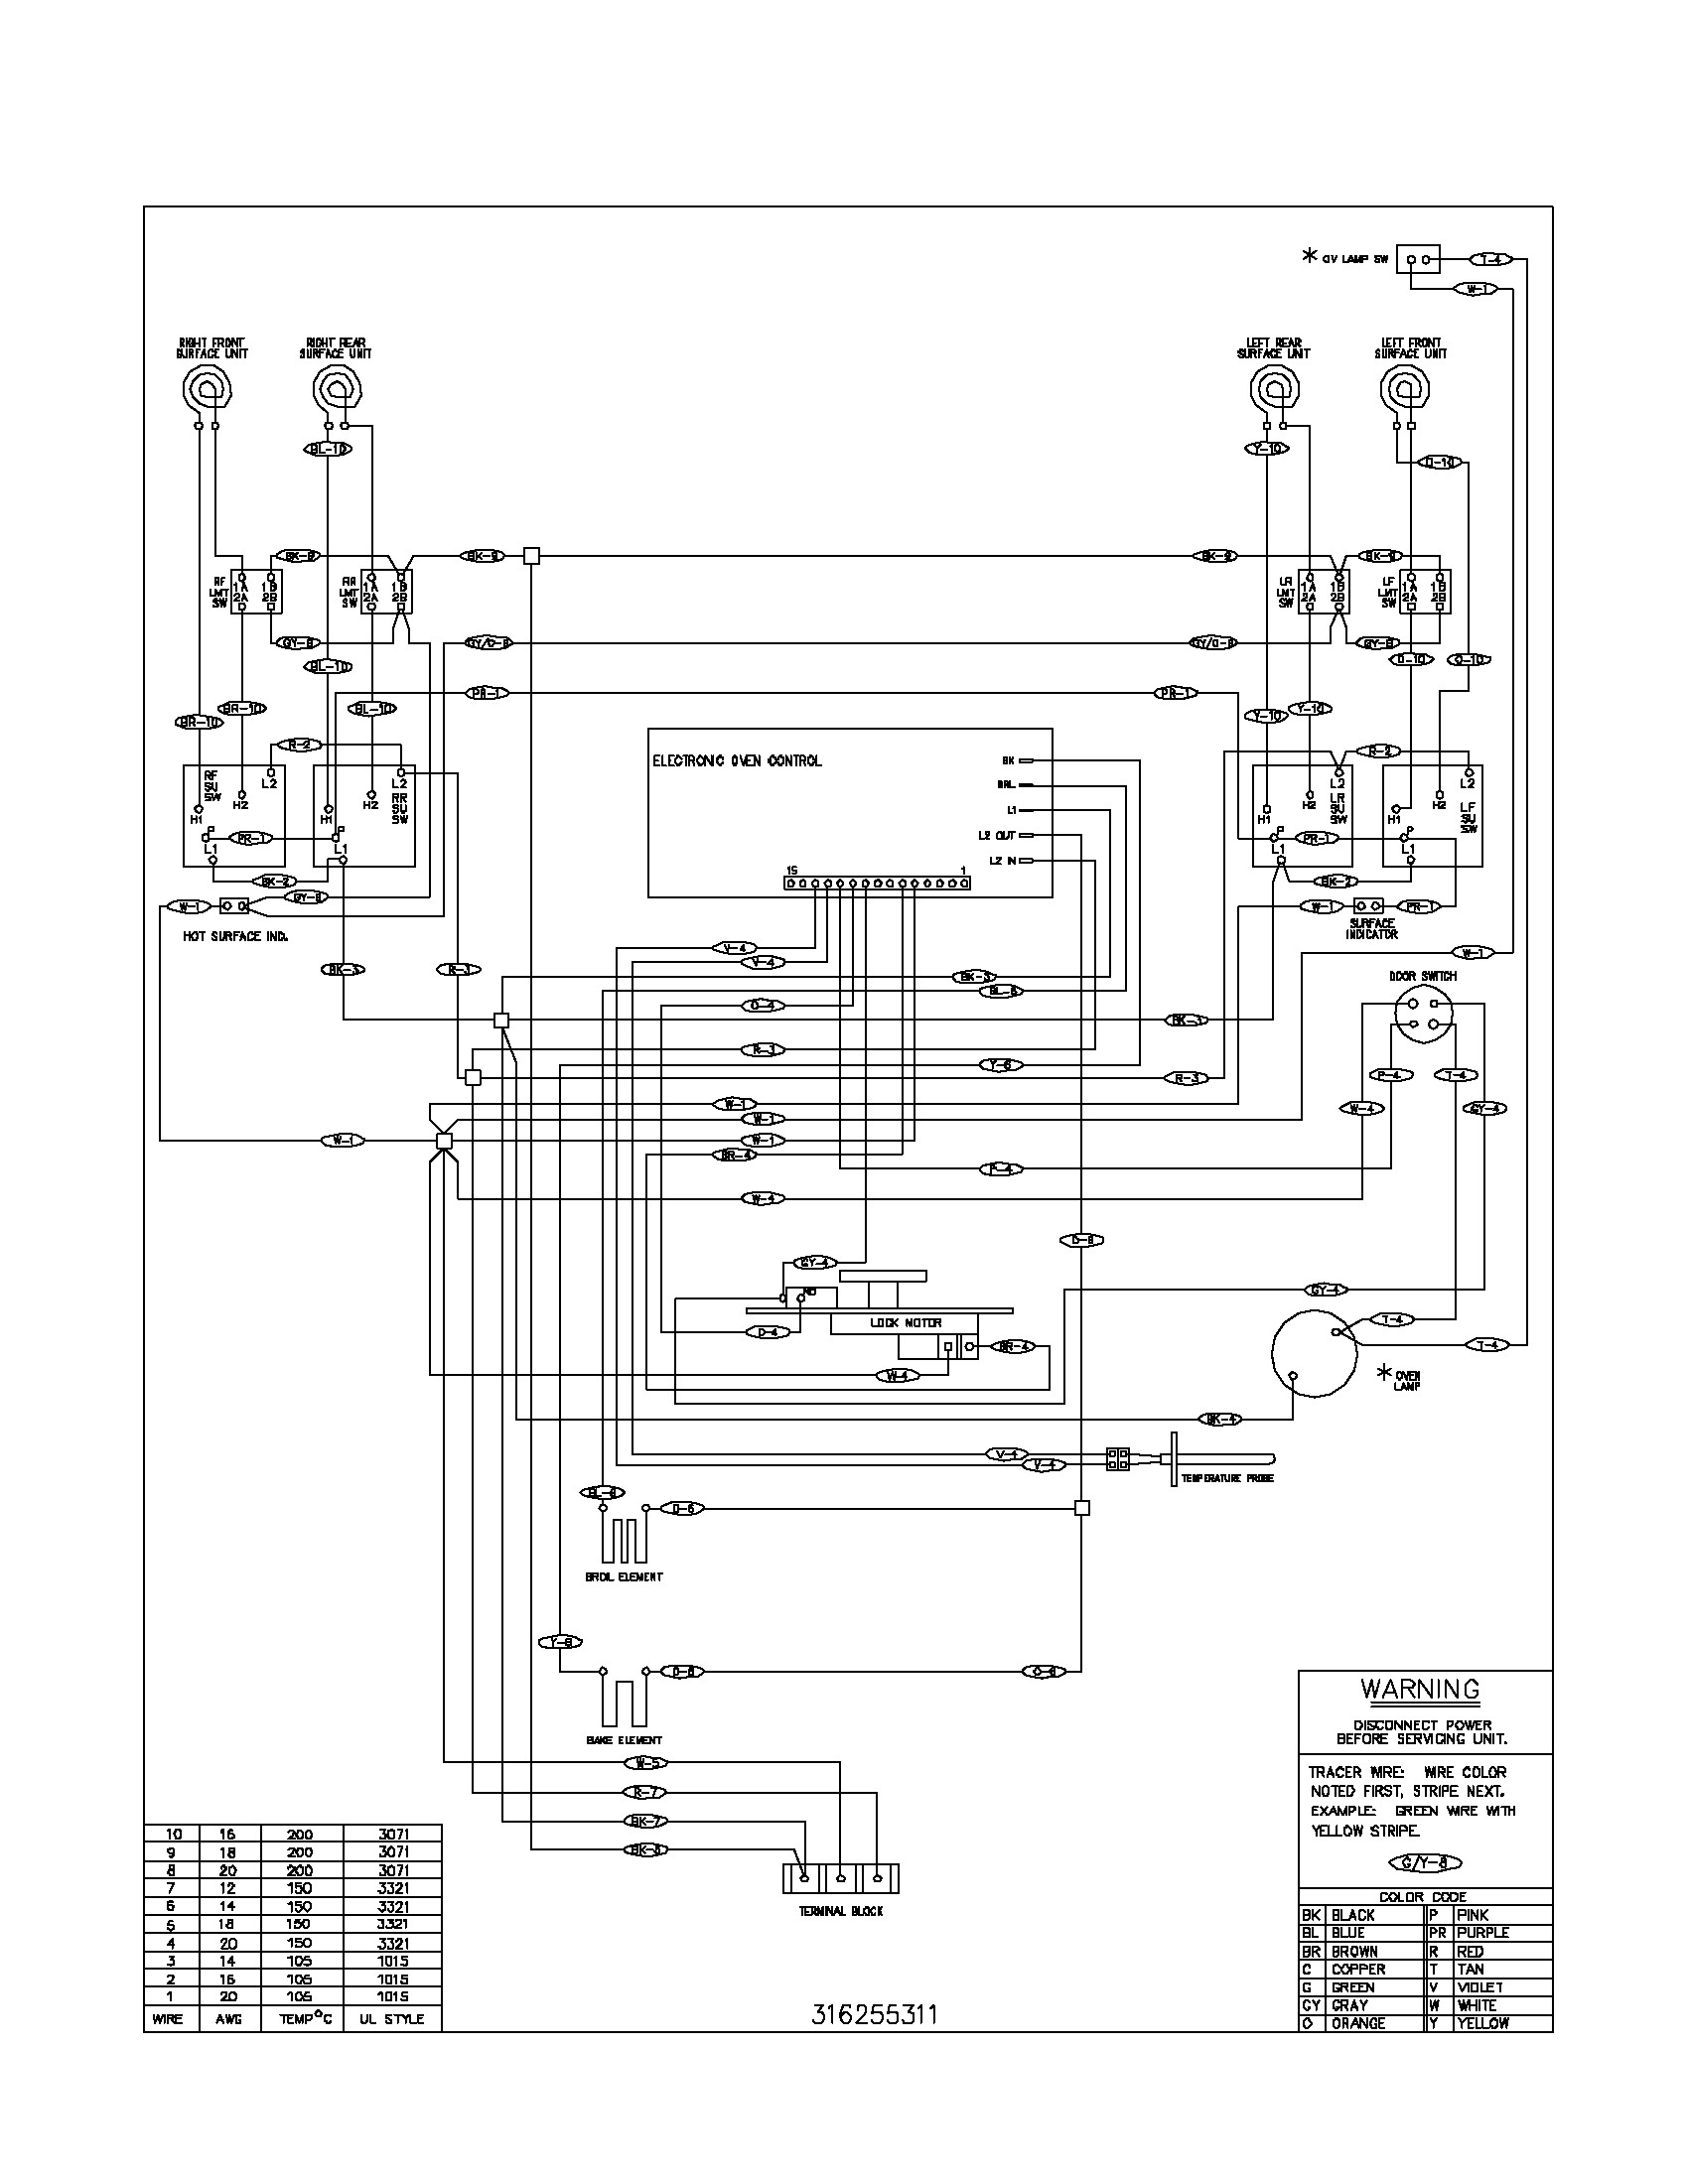 Gas Stove Wiring Complete Diagrams Dual Fuel Diagram Ge Oven Explained Rh Dmdelectro Co Kenmore